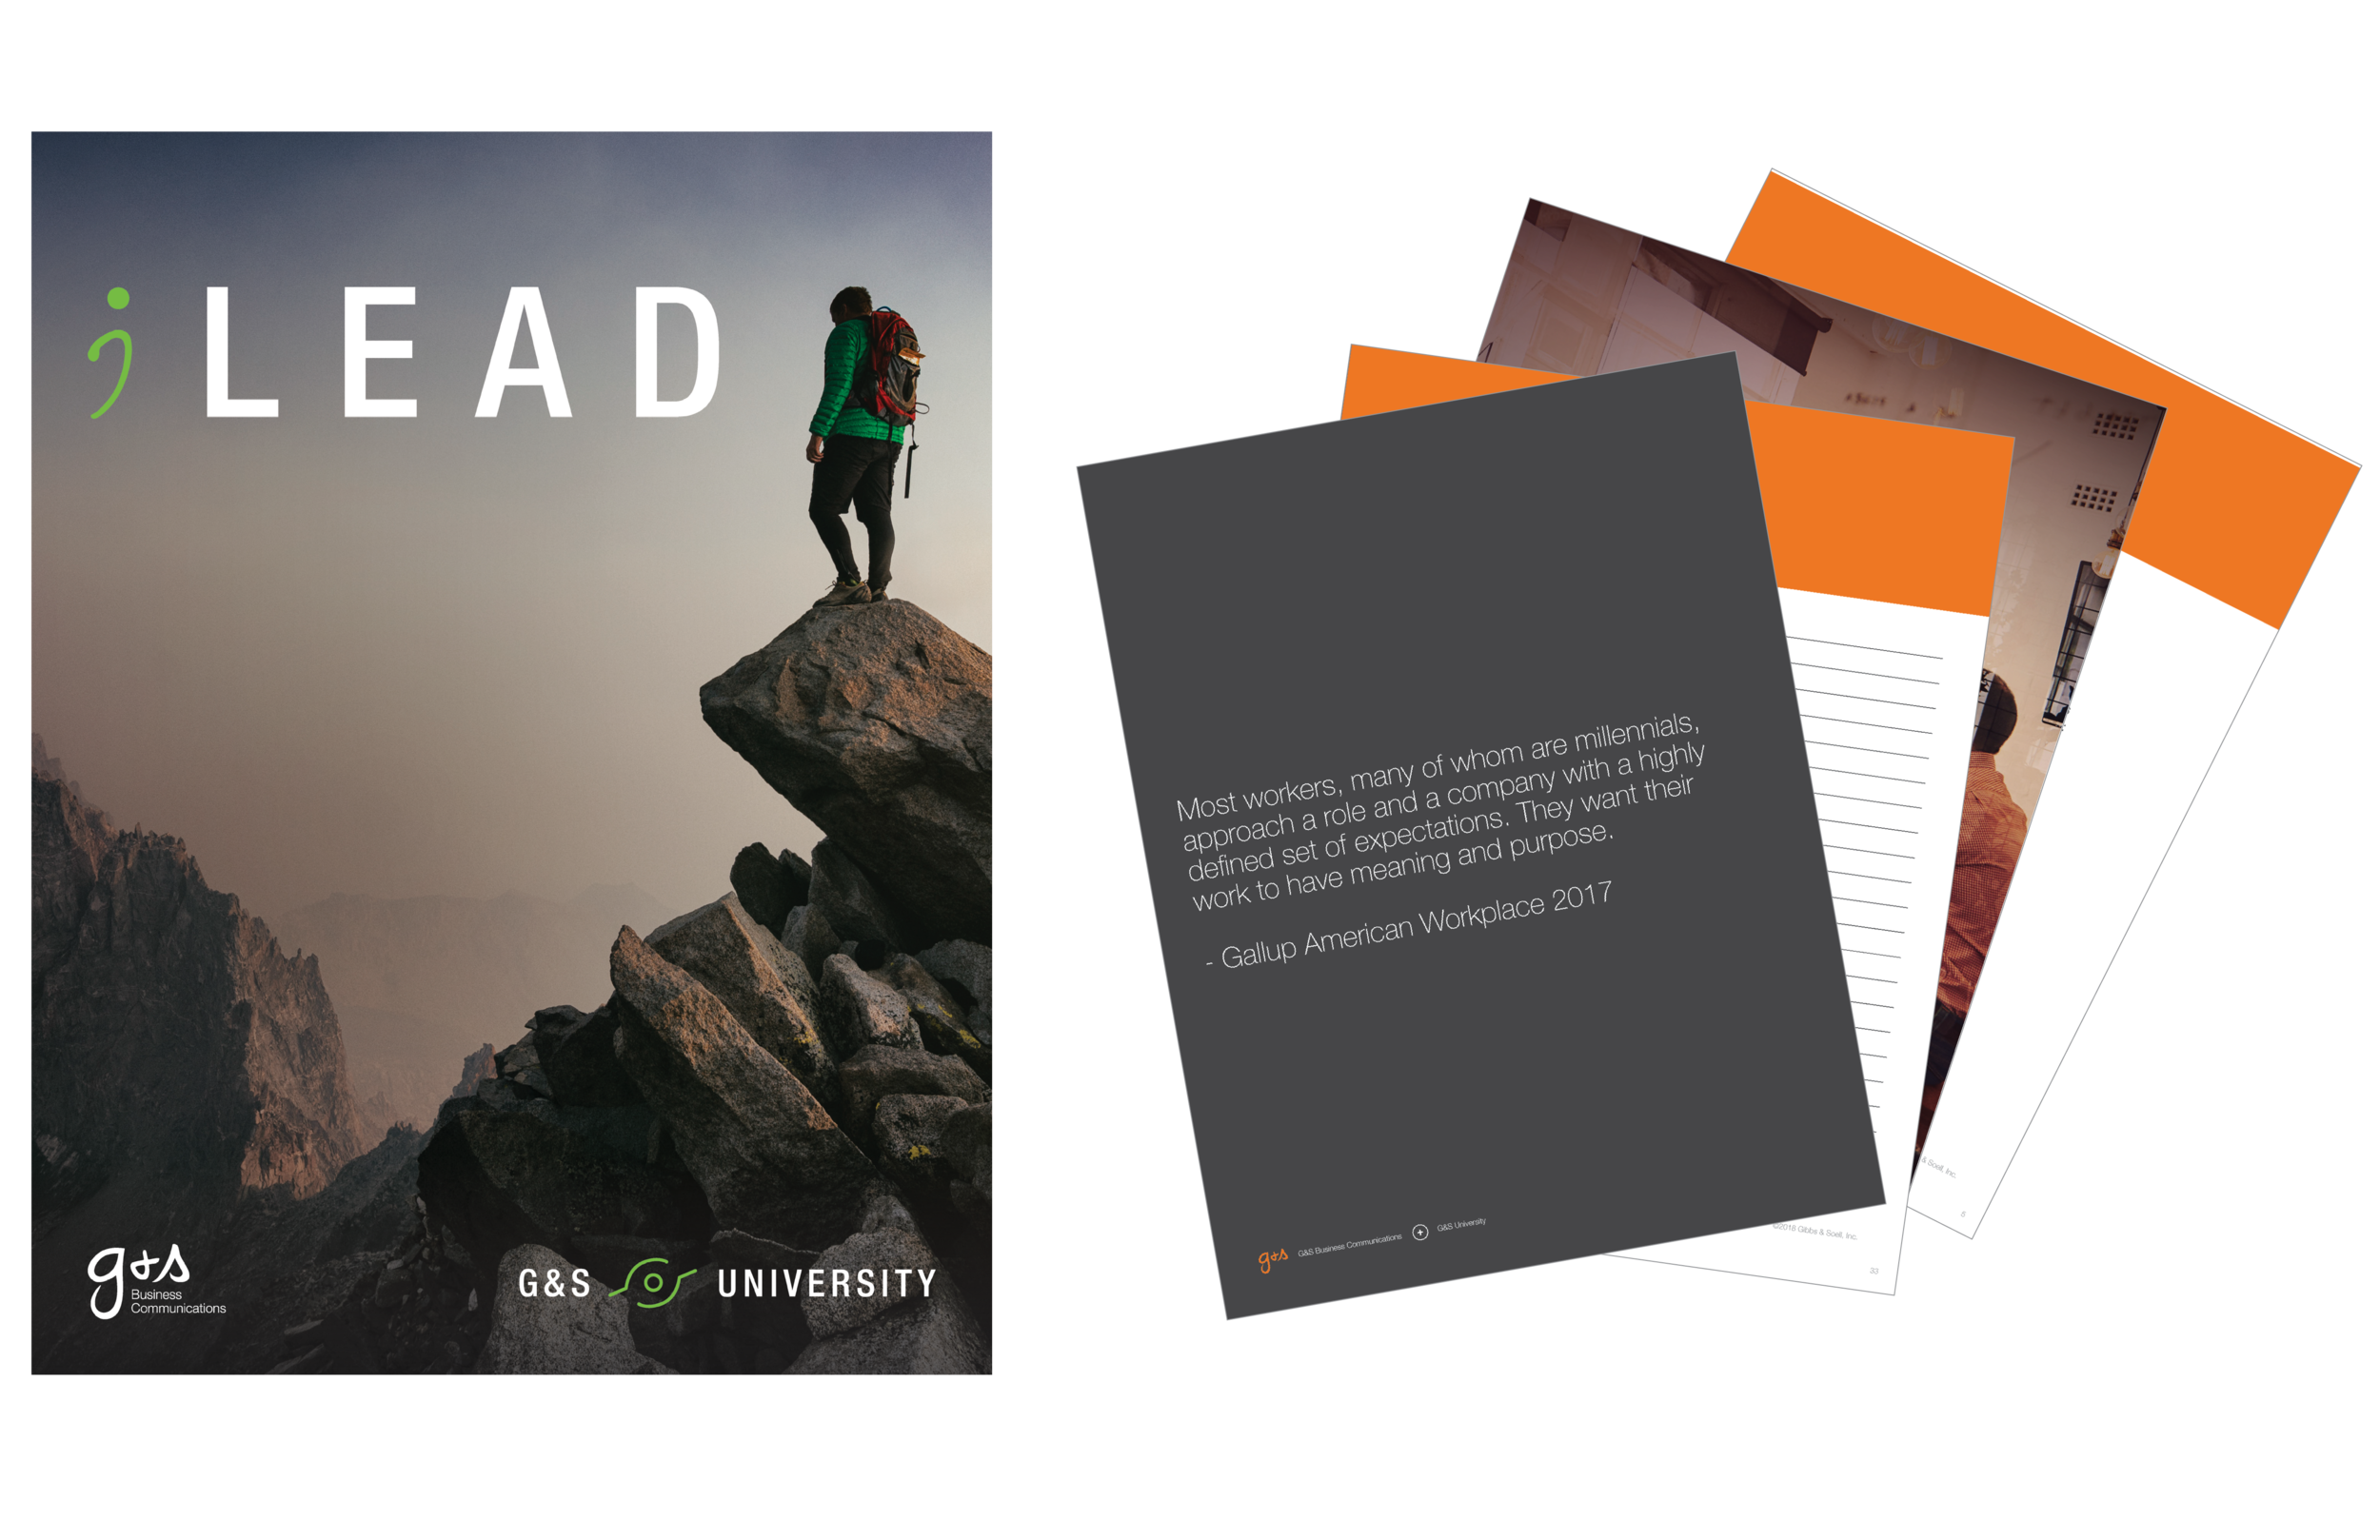 iLeadCollateral4.png